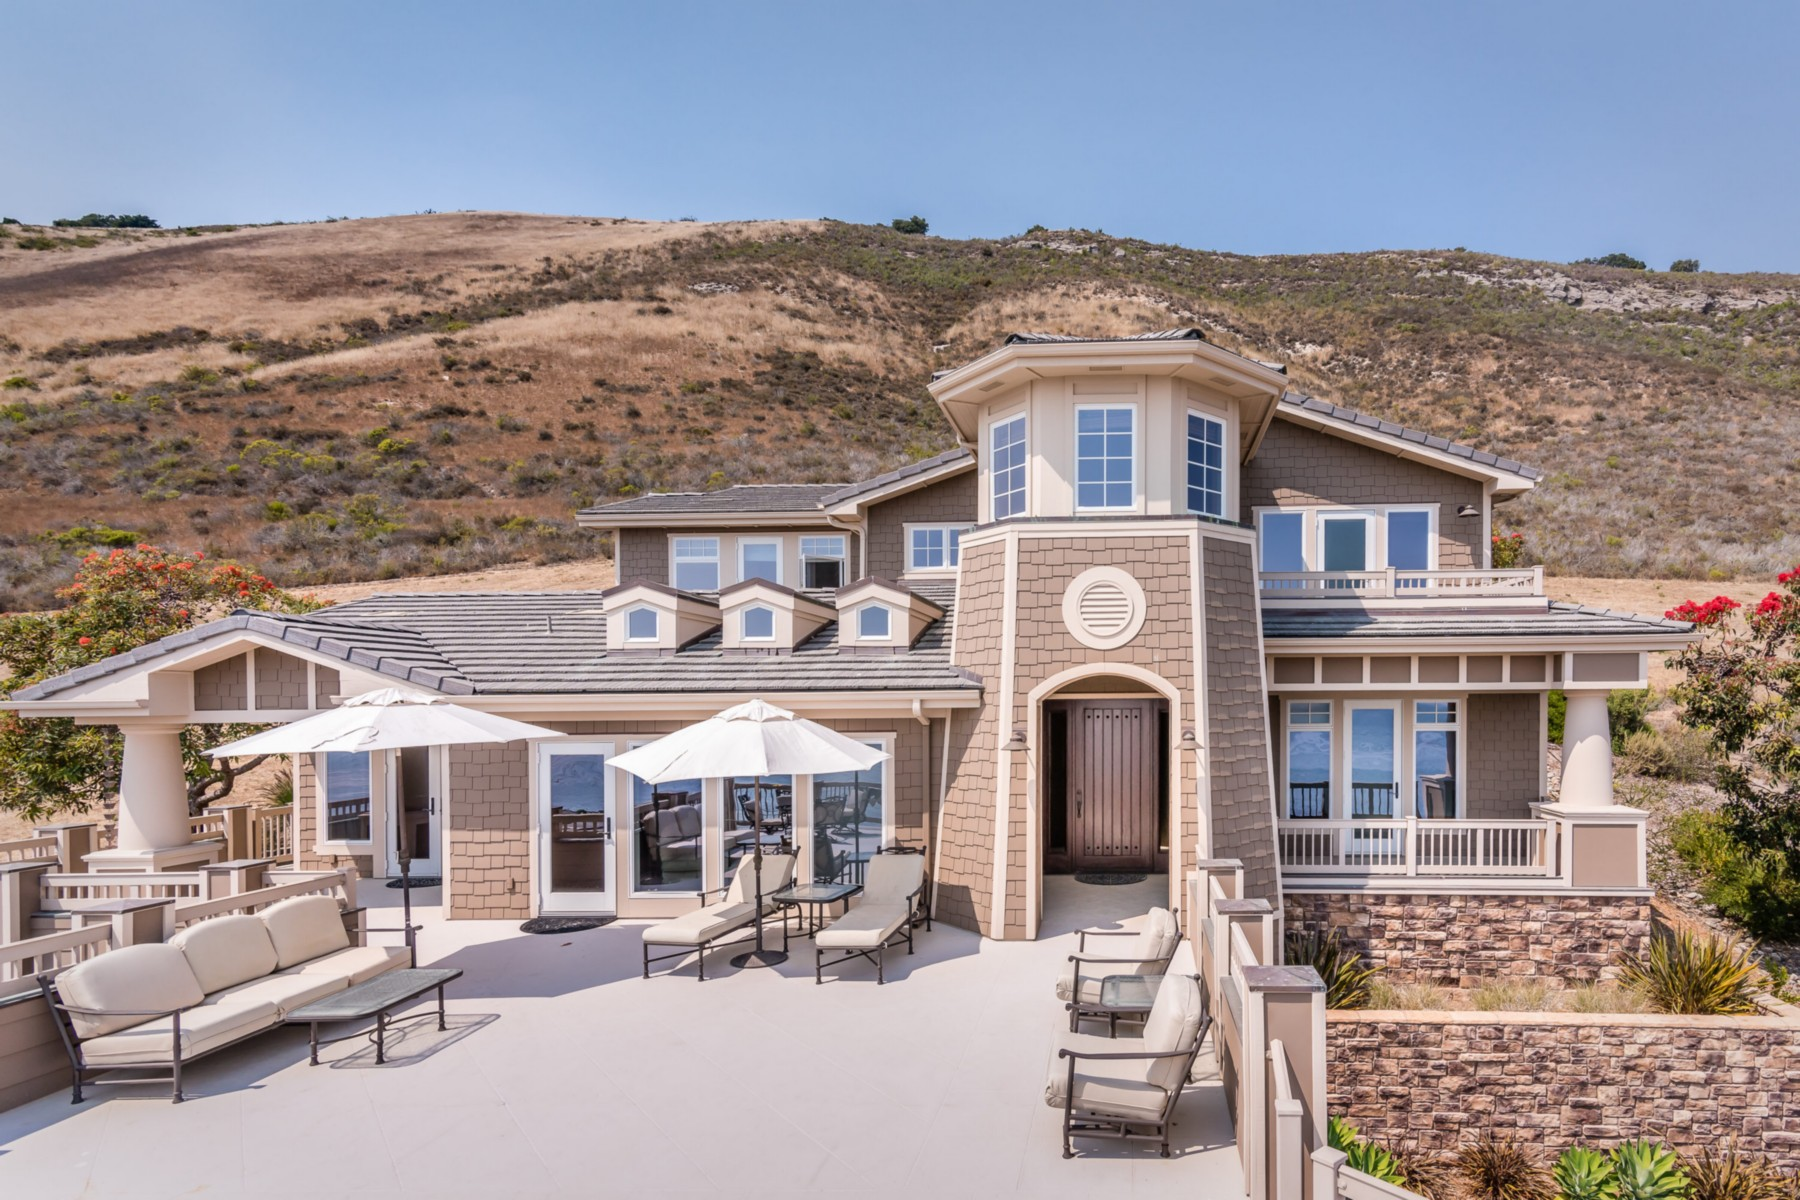 Maison unifamiliale pour l Vente à Lavish Oceanfront Estate 122 Buff Dr. Pismo Beach, Californie, 93420 États-Unis